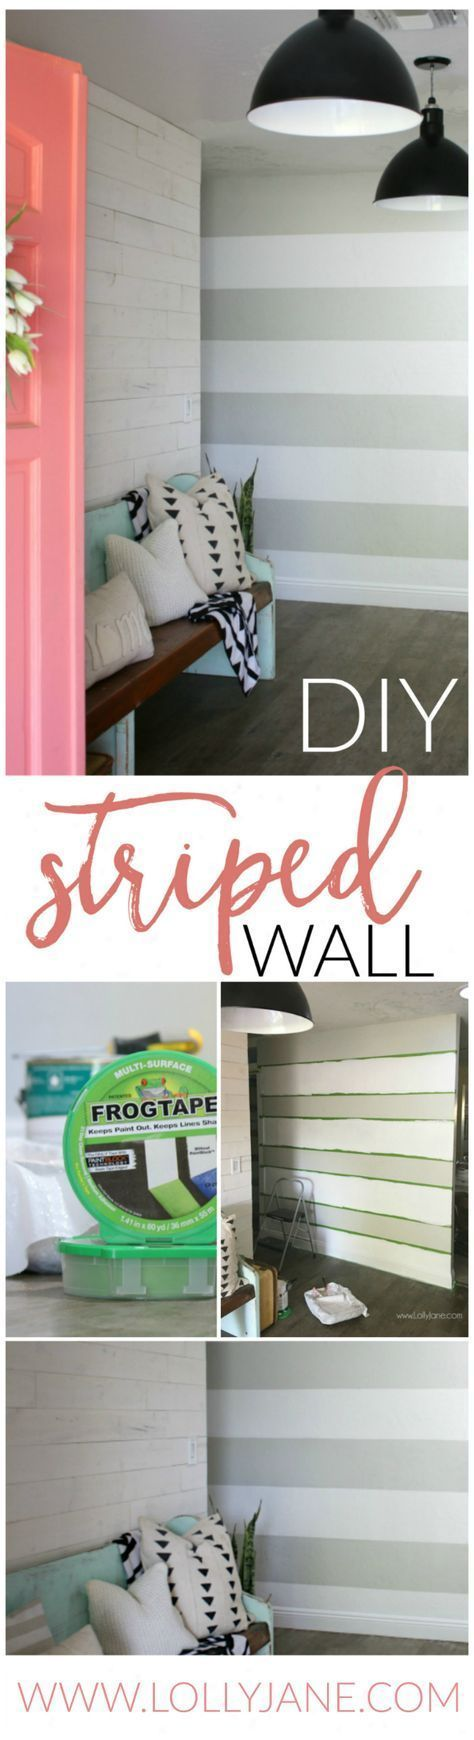 DIY Striped Accent Wall - With Gray & White Stripes #graystripedwalls DIY Striped Accent Wall | I love this gray and white striped wall, such an easy tutorial on how to stripe walls with straight lines and no bleeding or touch ups! Adore this gray white home decor, such a cute accent wall! #graystripedwalls DIY Striped Accent Wall - With Gray & White Stripes #graystripedwalls DIY Striped Accent Wall | I love this gray and white striped wall, such an easy tutorial on how to stripe walls with stra #graystripedwalls